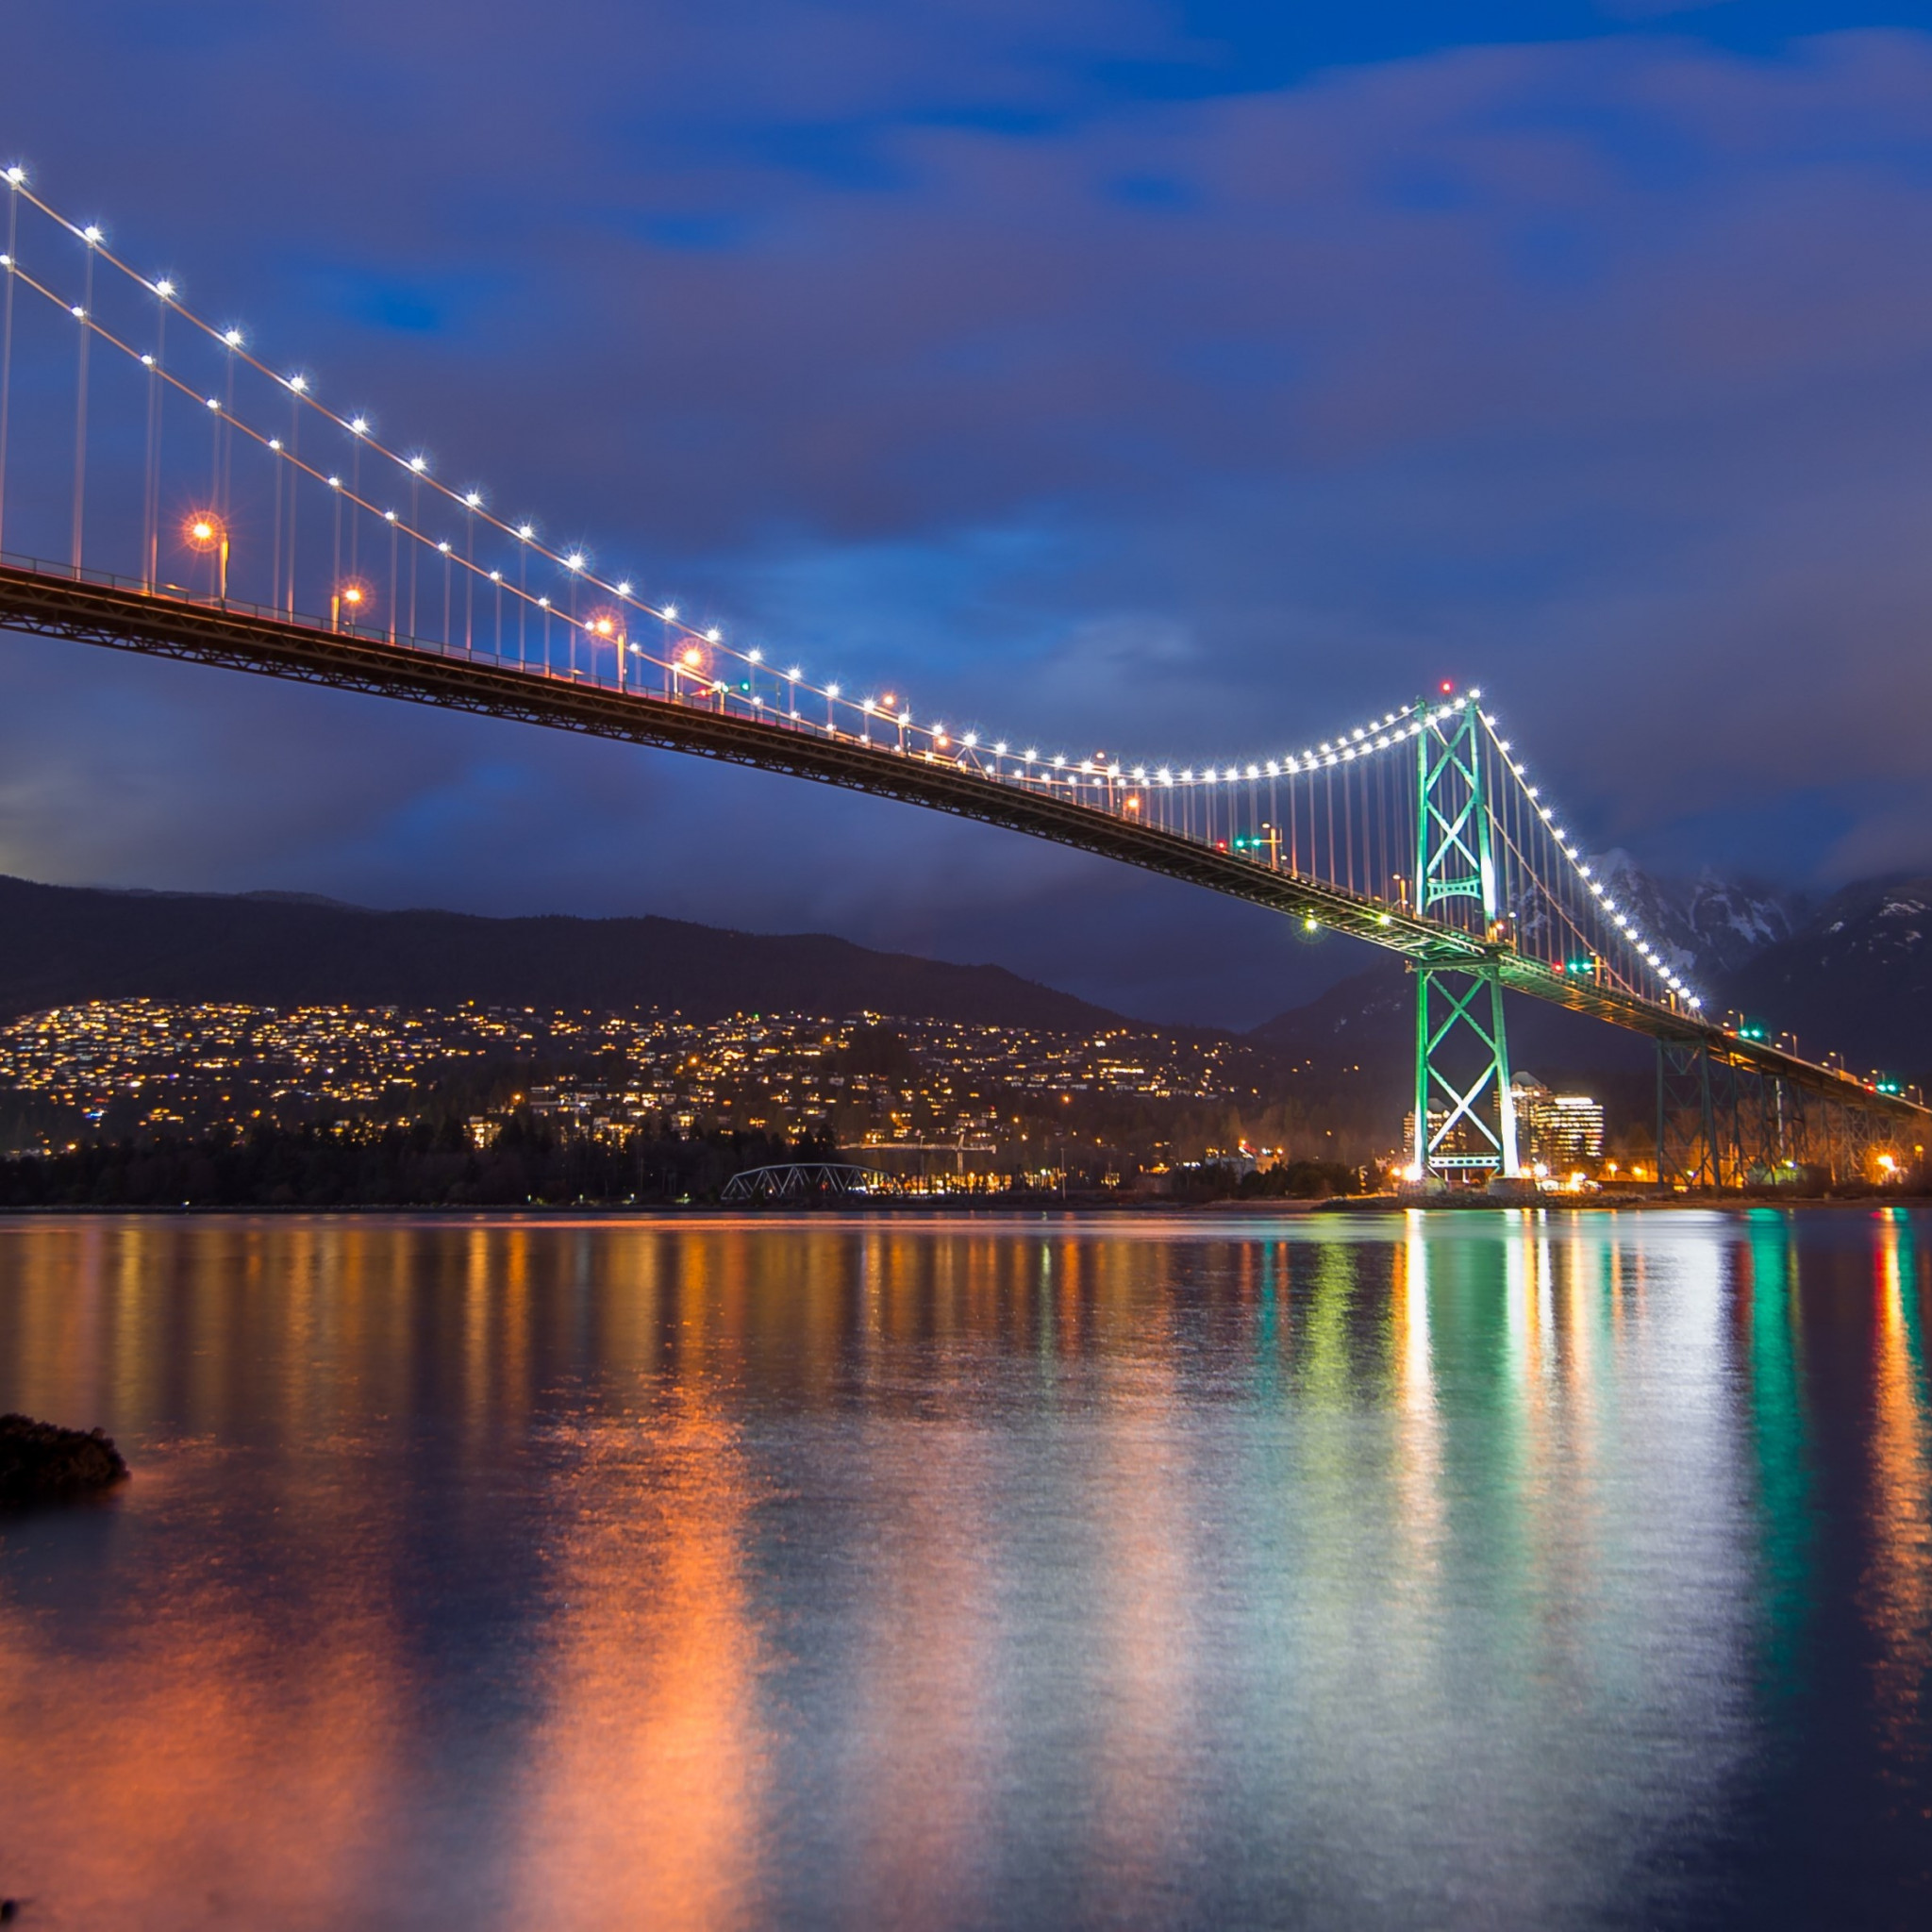 Lions Gate Bridge, Burrard Inlet, British Columbia | 2048x2048 wallpaper